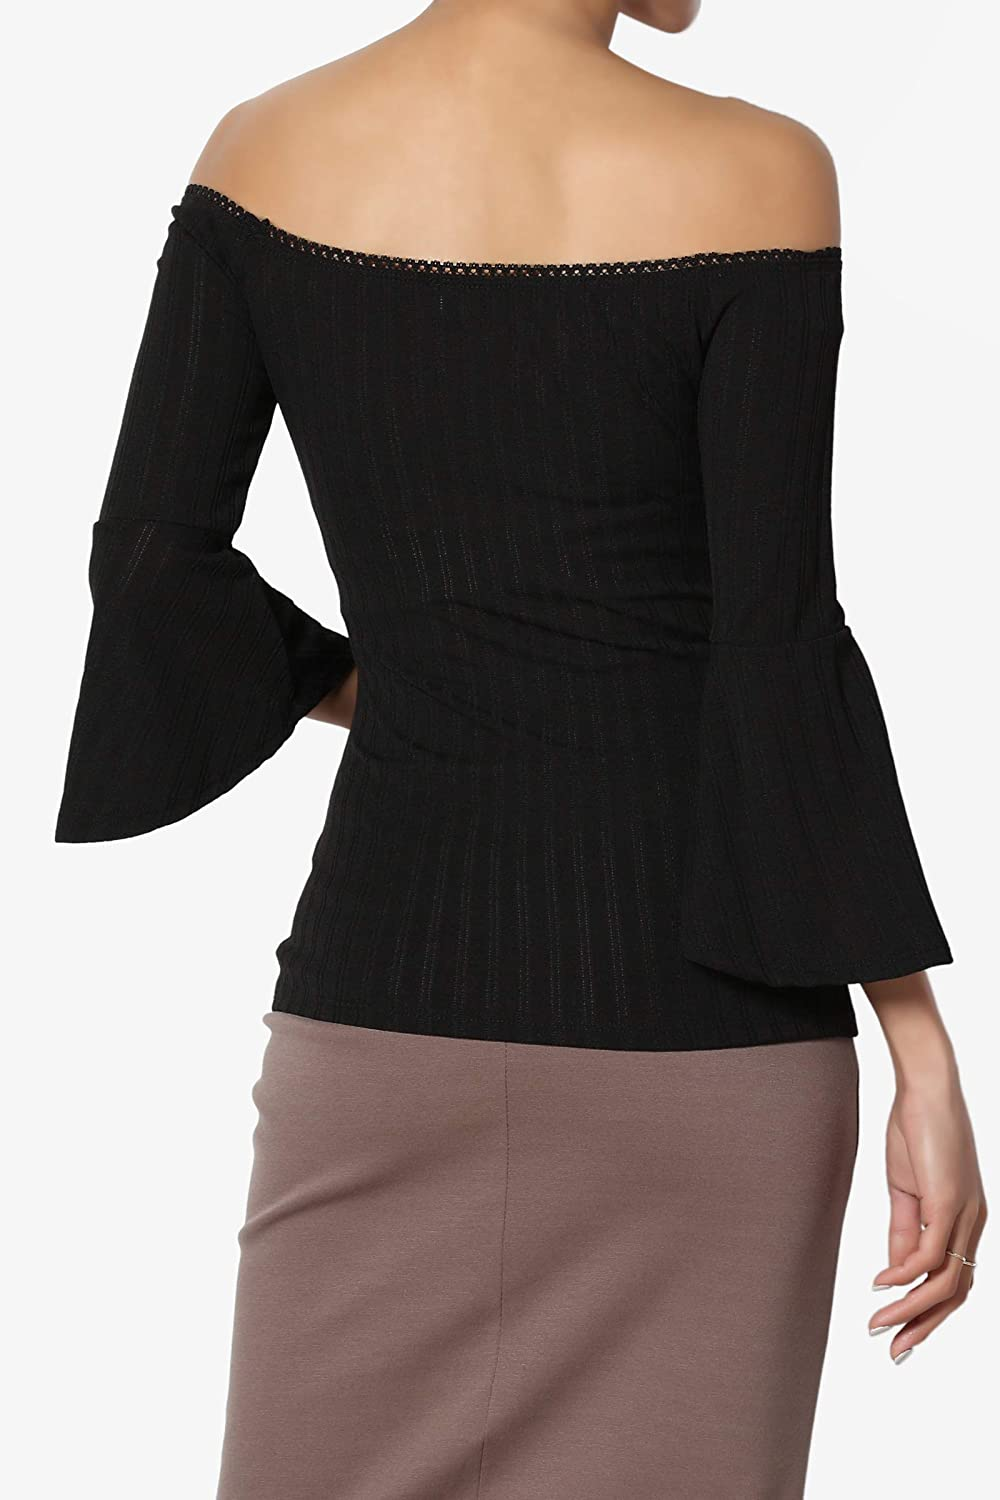 5414a8bbd8e08 TheMogan Women s Off The Shoulder Stretch Cotton Crop Top Short Sleeve  Waist Tee at Amazon Women s Clothing store